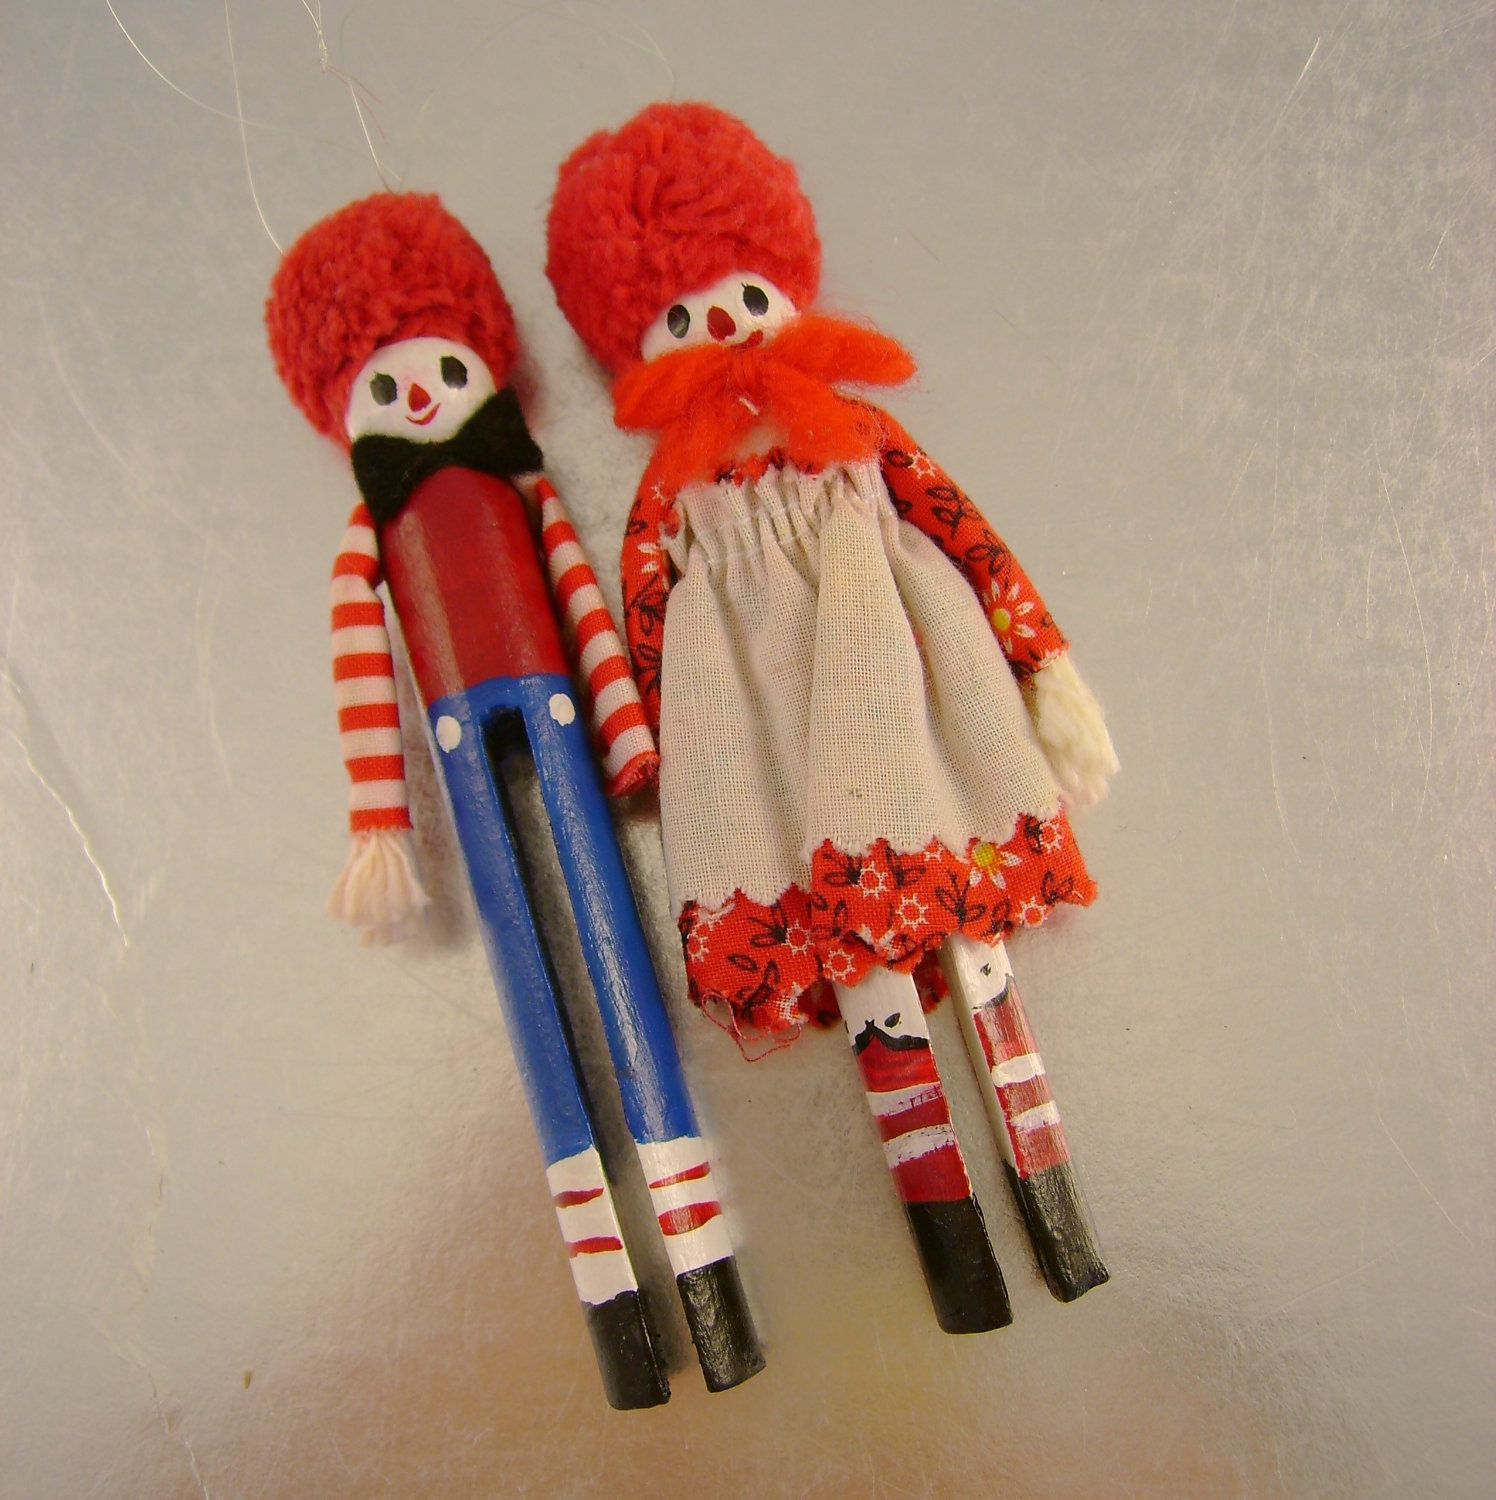 Extremely Cute Little Vintage Raggedy Ann And Andy Hand Made Clothespin Ornaments Raggedy Ann